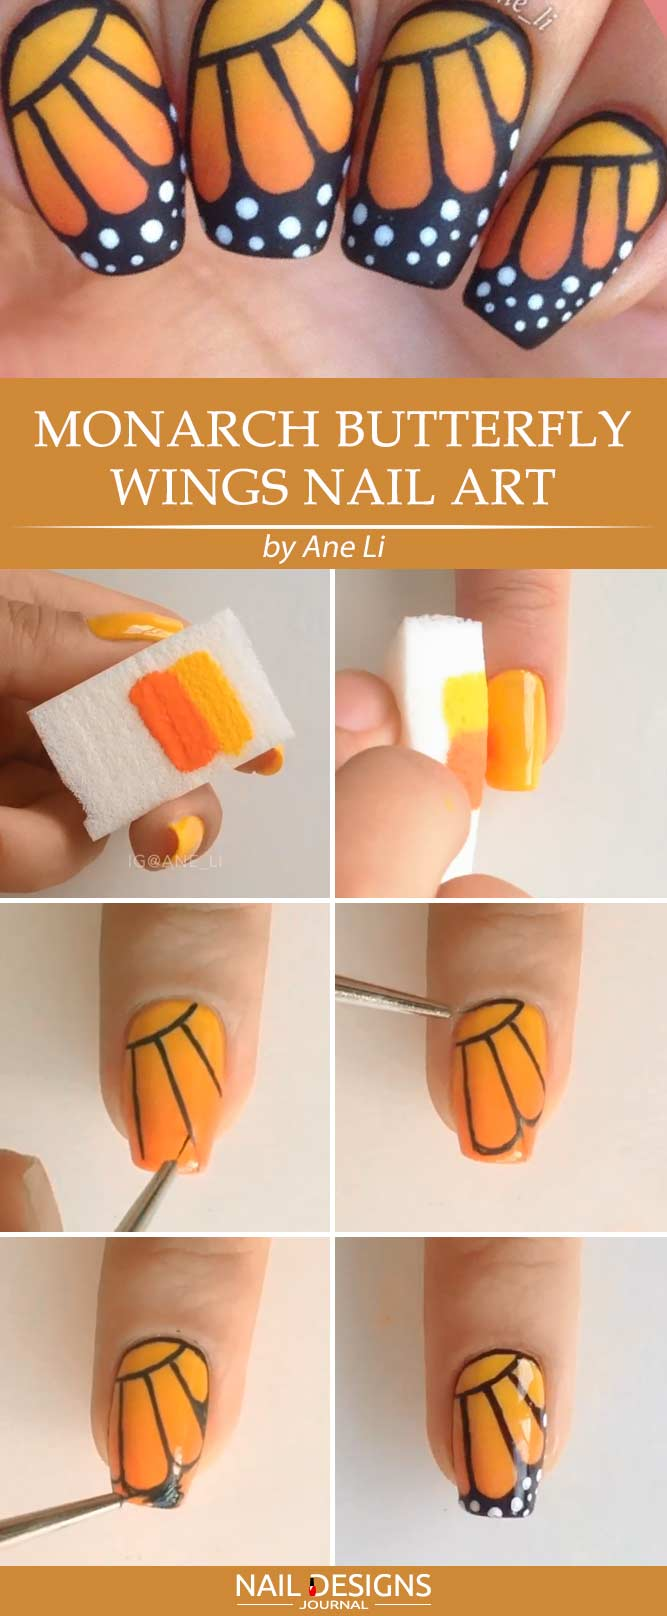 Monarch Butterfly Wings Nail Art In Simple Steps #ombrenails #shortnails